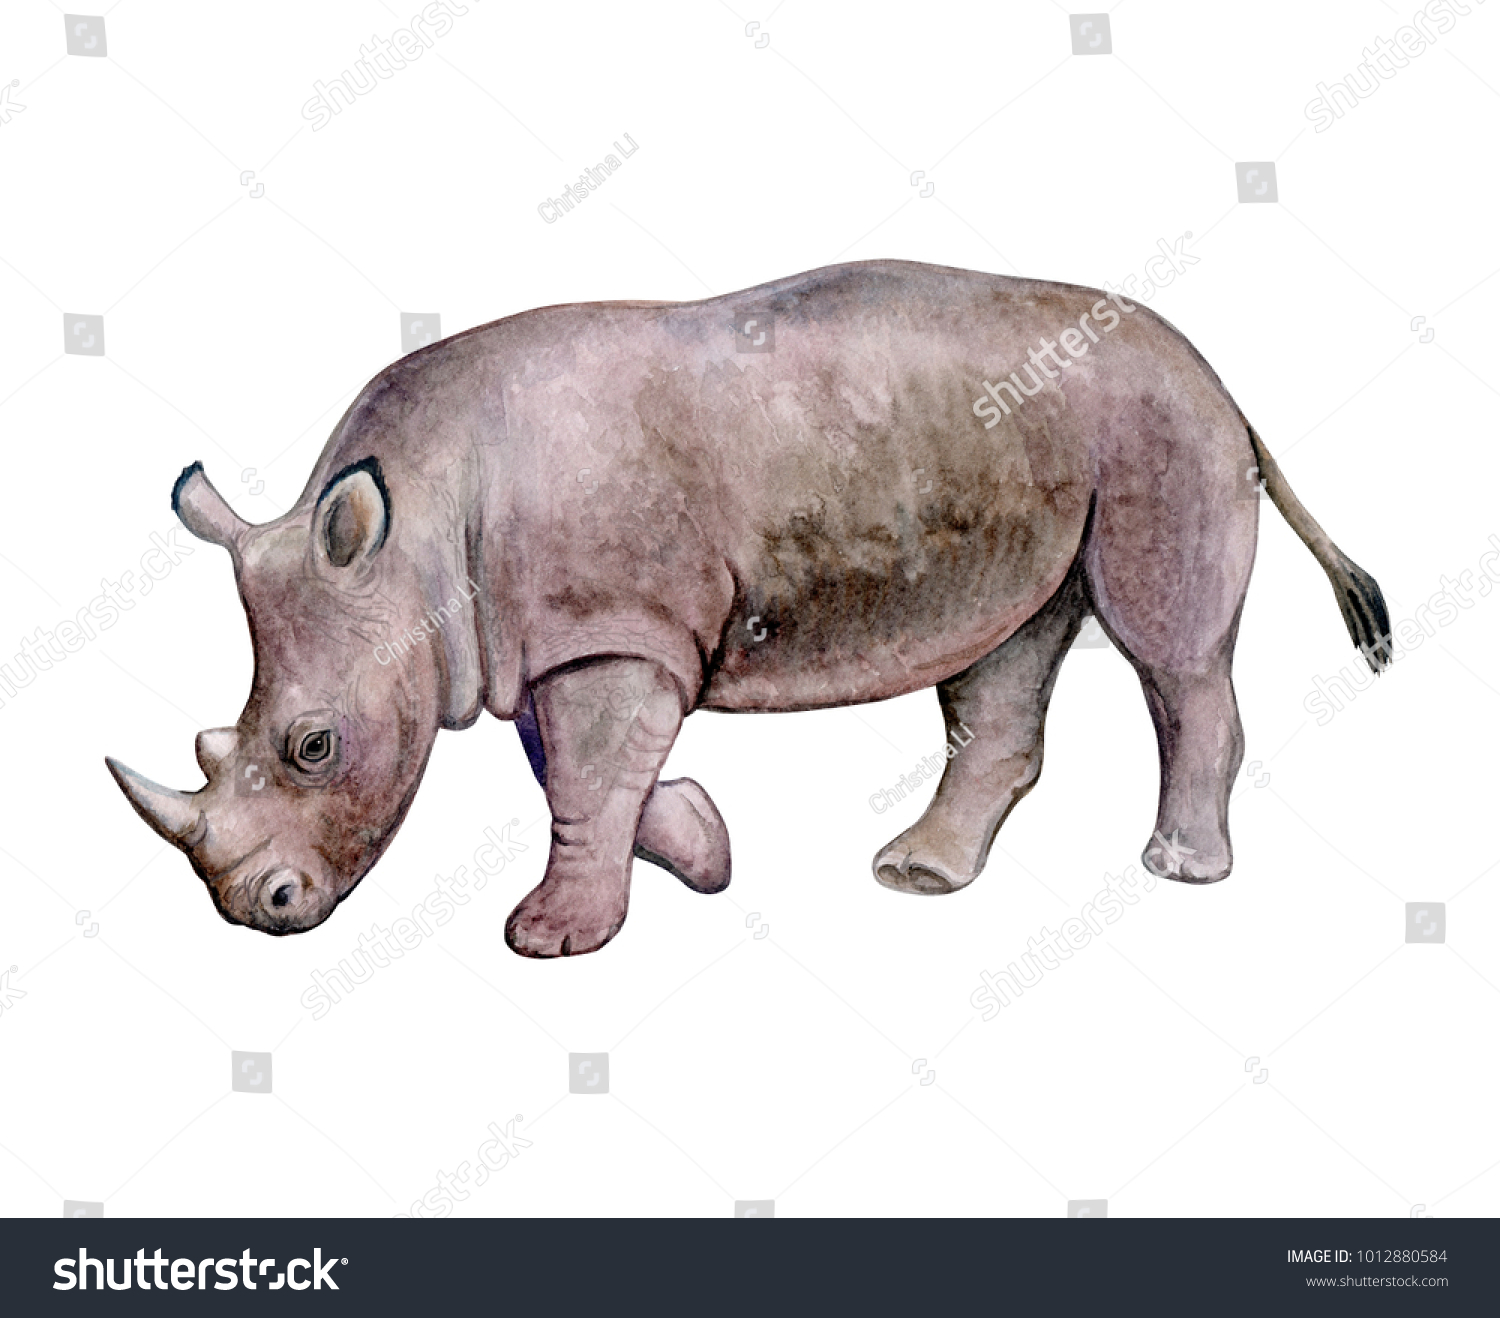 hight resolution of rhinoceros rhino isolated on white background watercolor illustration template clipart handmade